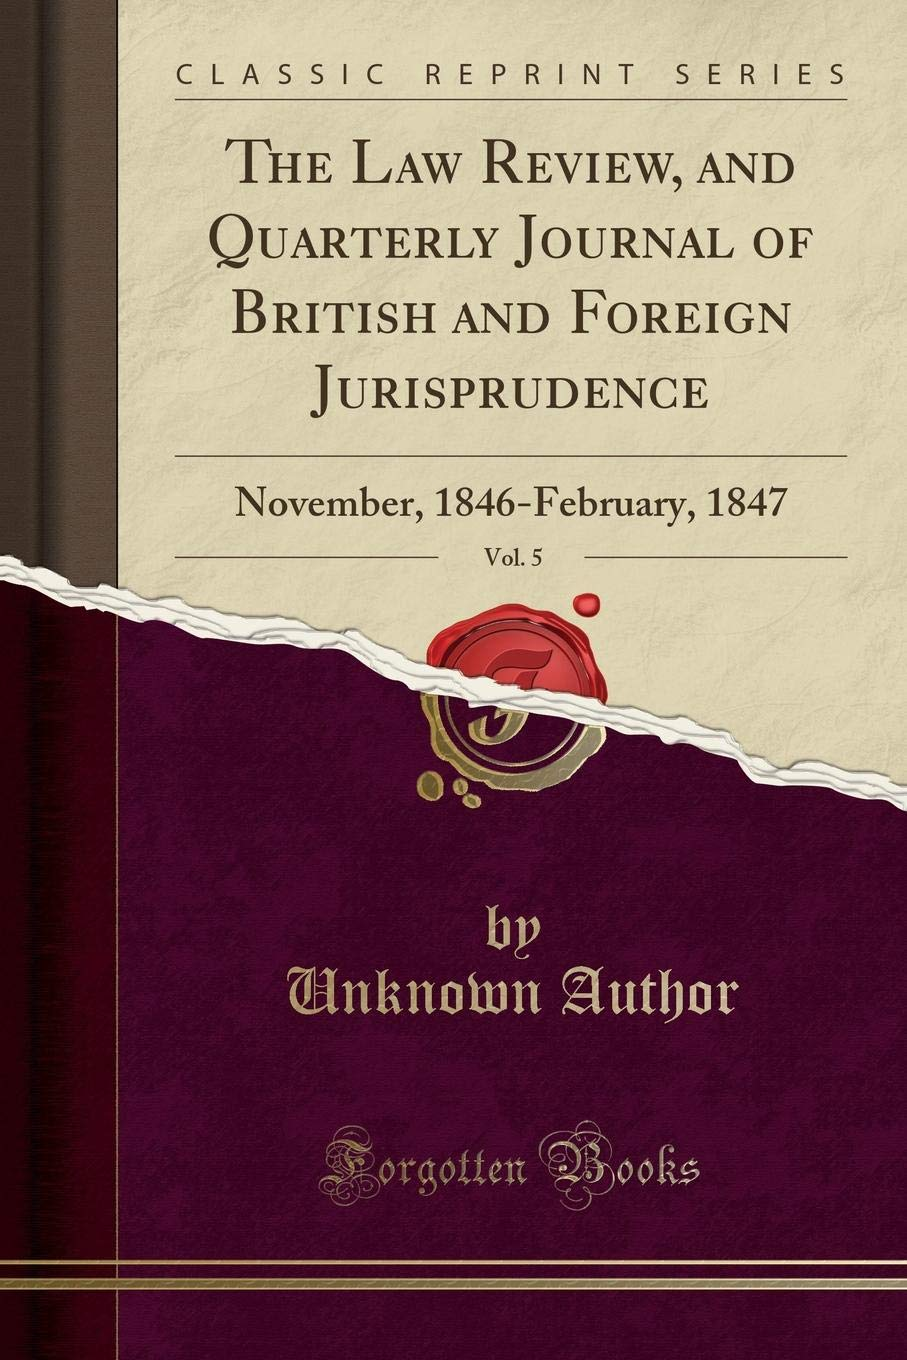 The Law Review, and Quarterly Journal of British and Foreign Jurisprudence, Vol. 5: November, 1846-February, 1847 (Classic Reprint) pdf